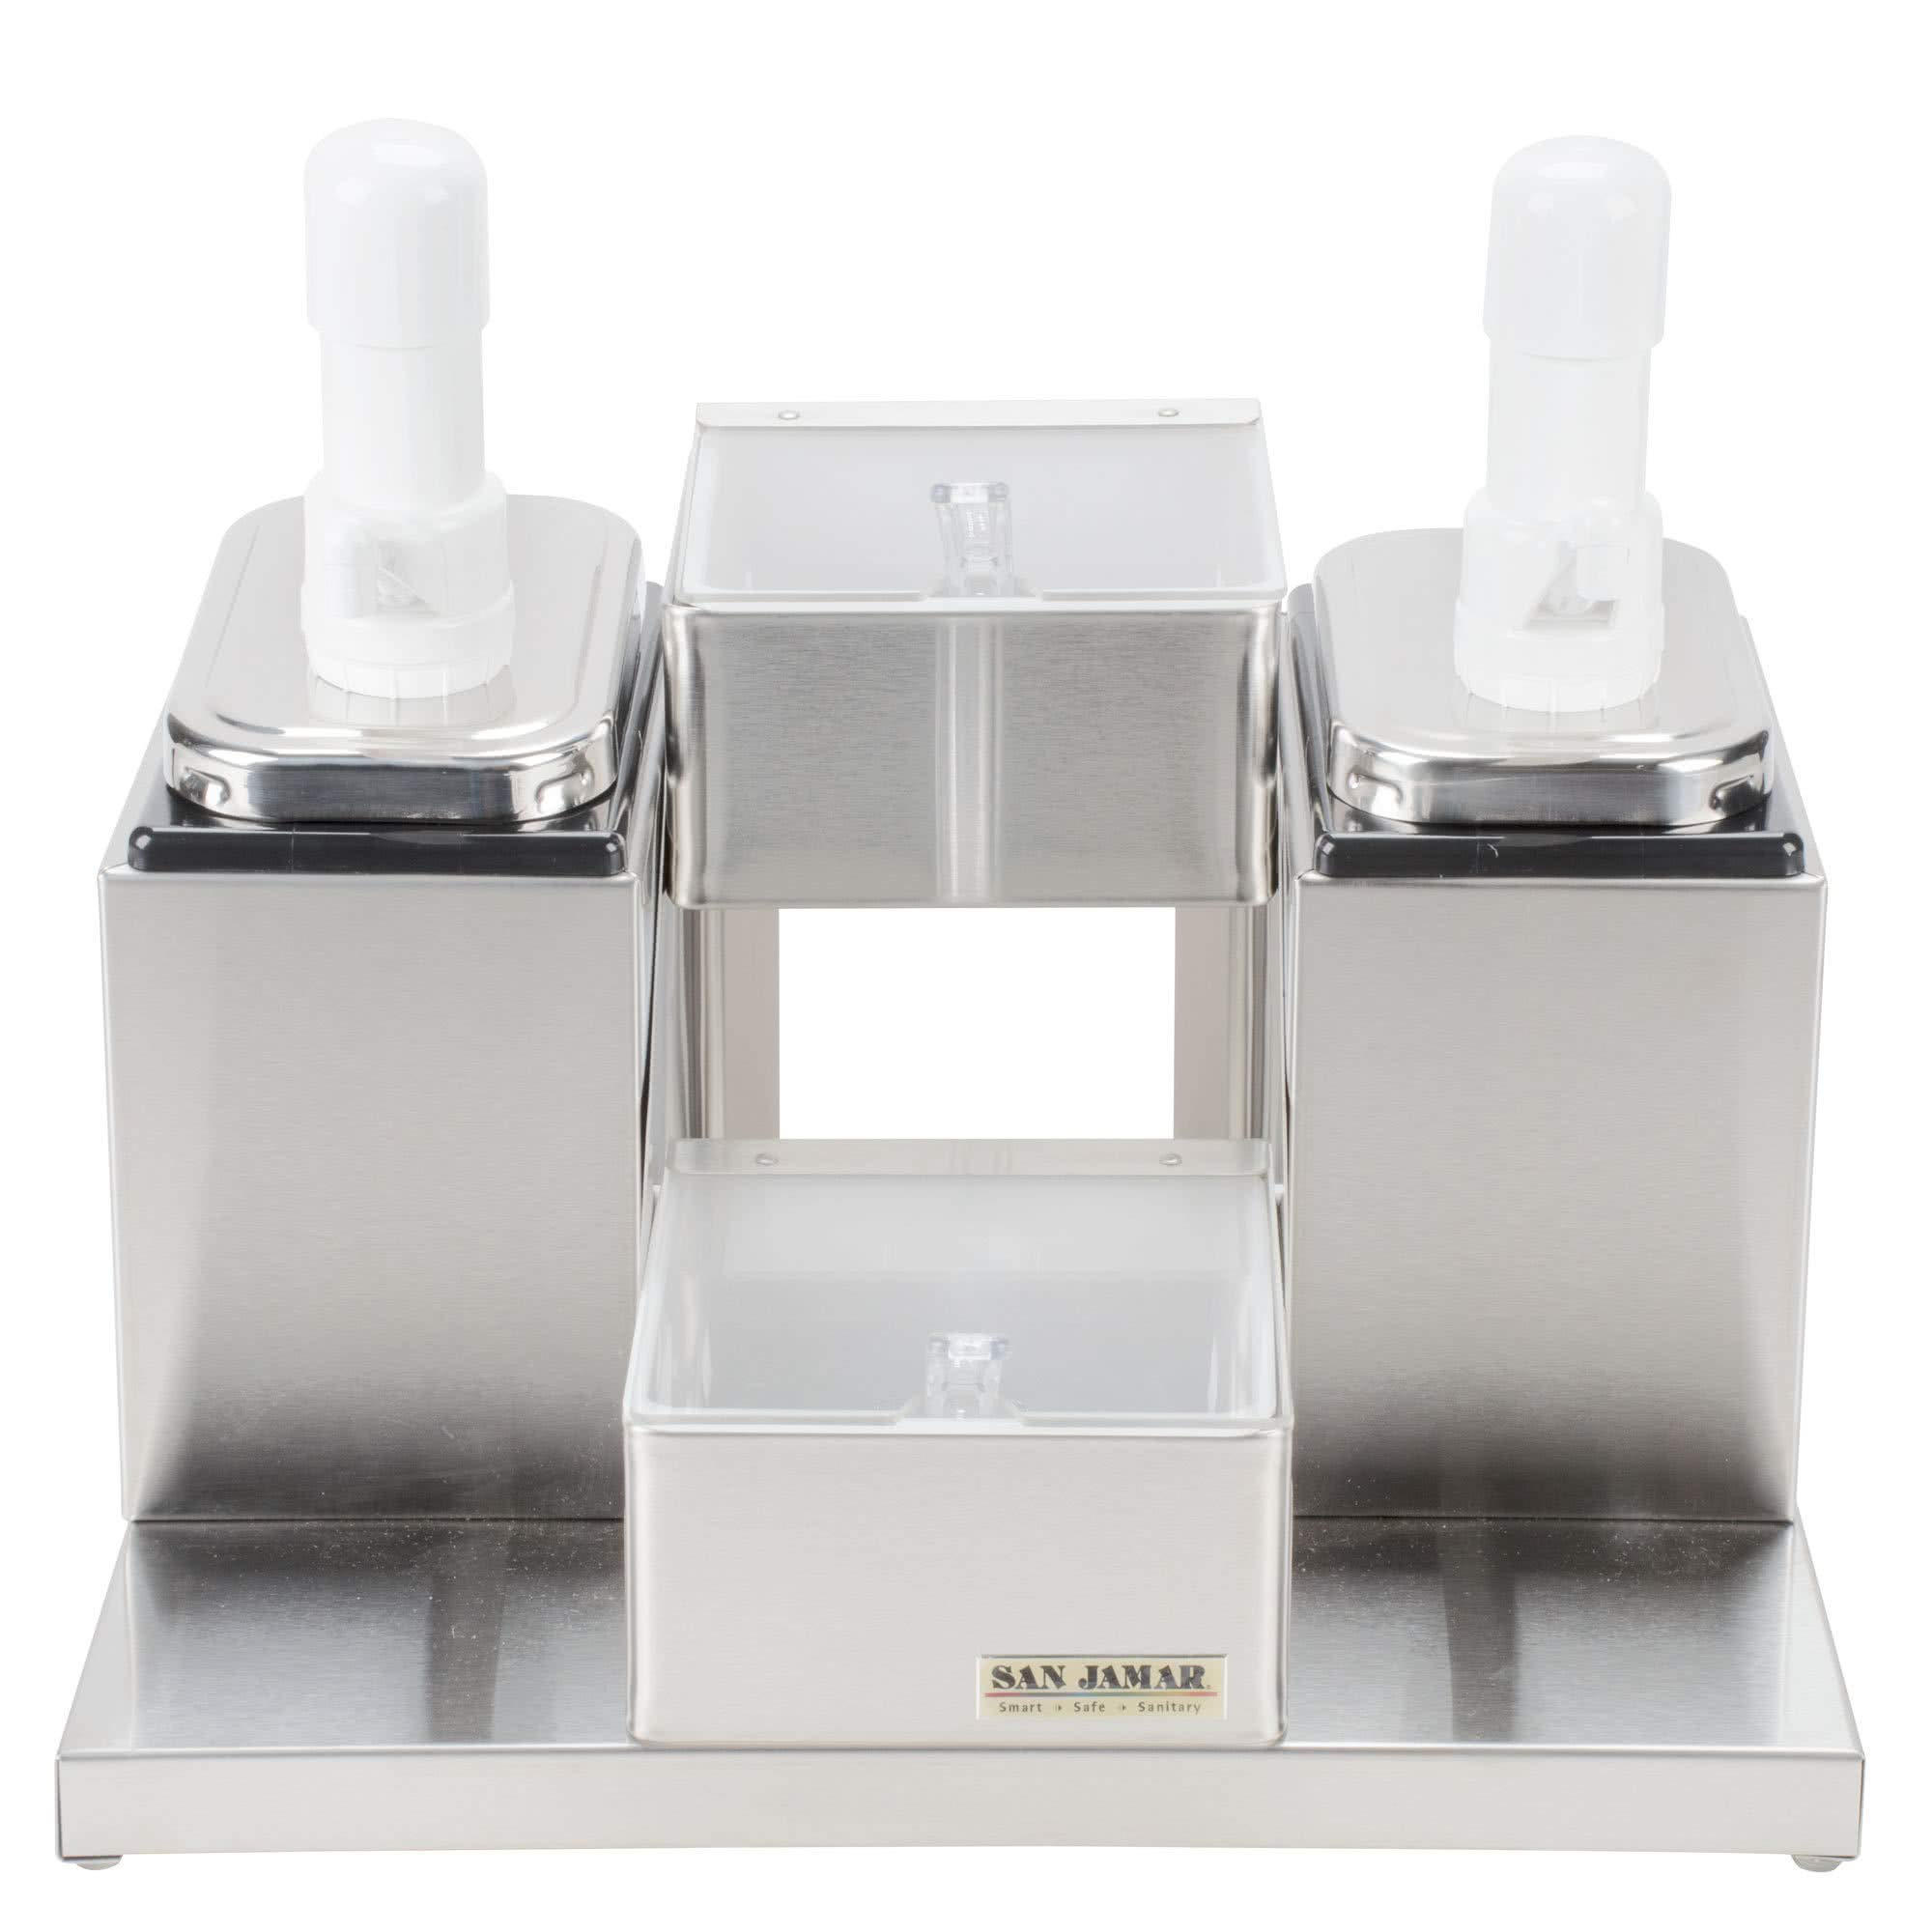 TableTop King P9725 Self Service Condiment Center with 2 Trays and 2 Pumps